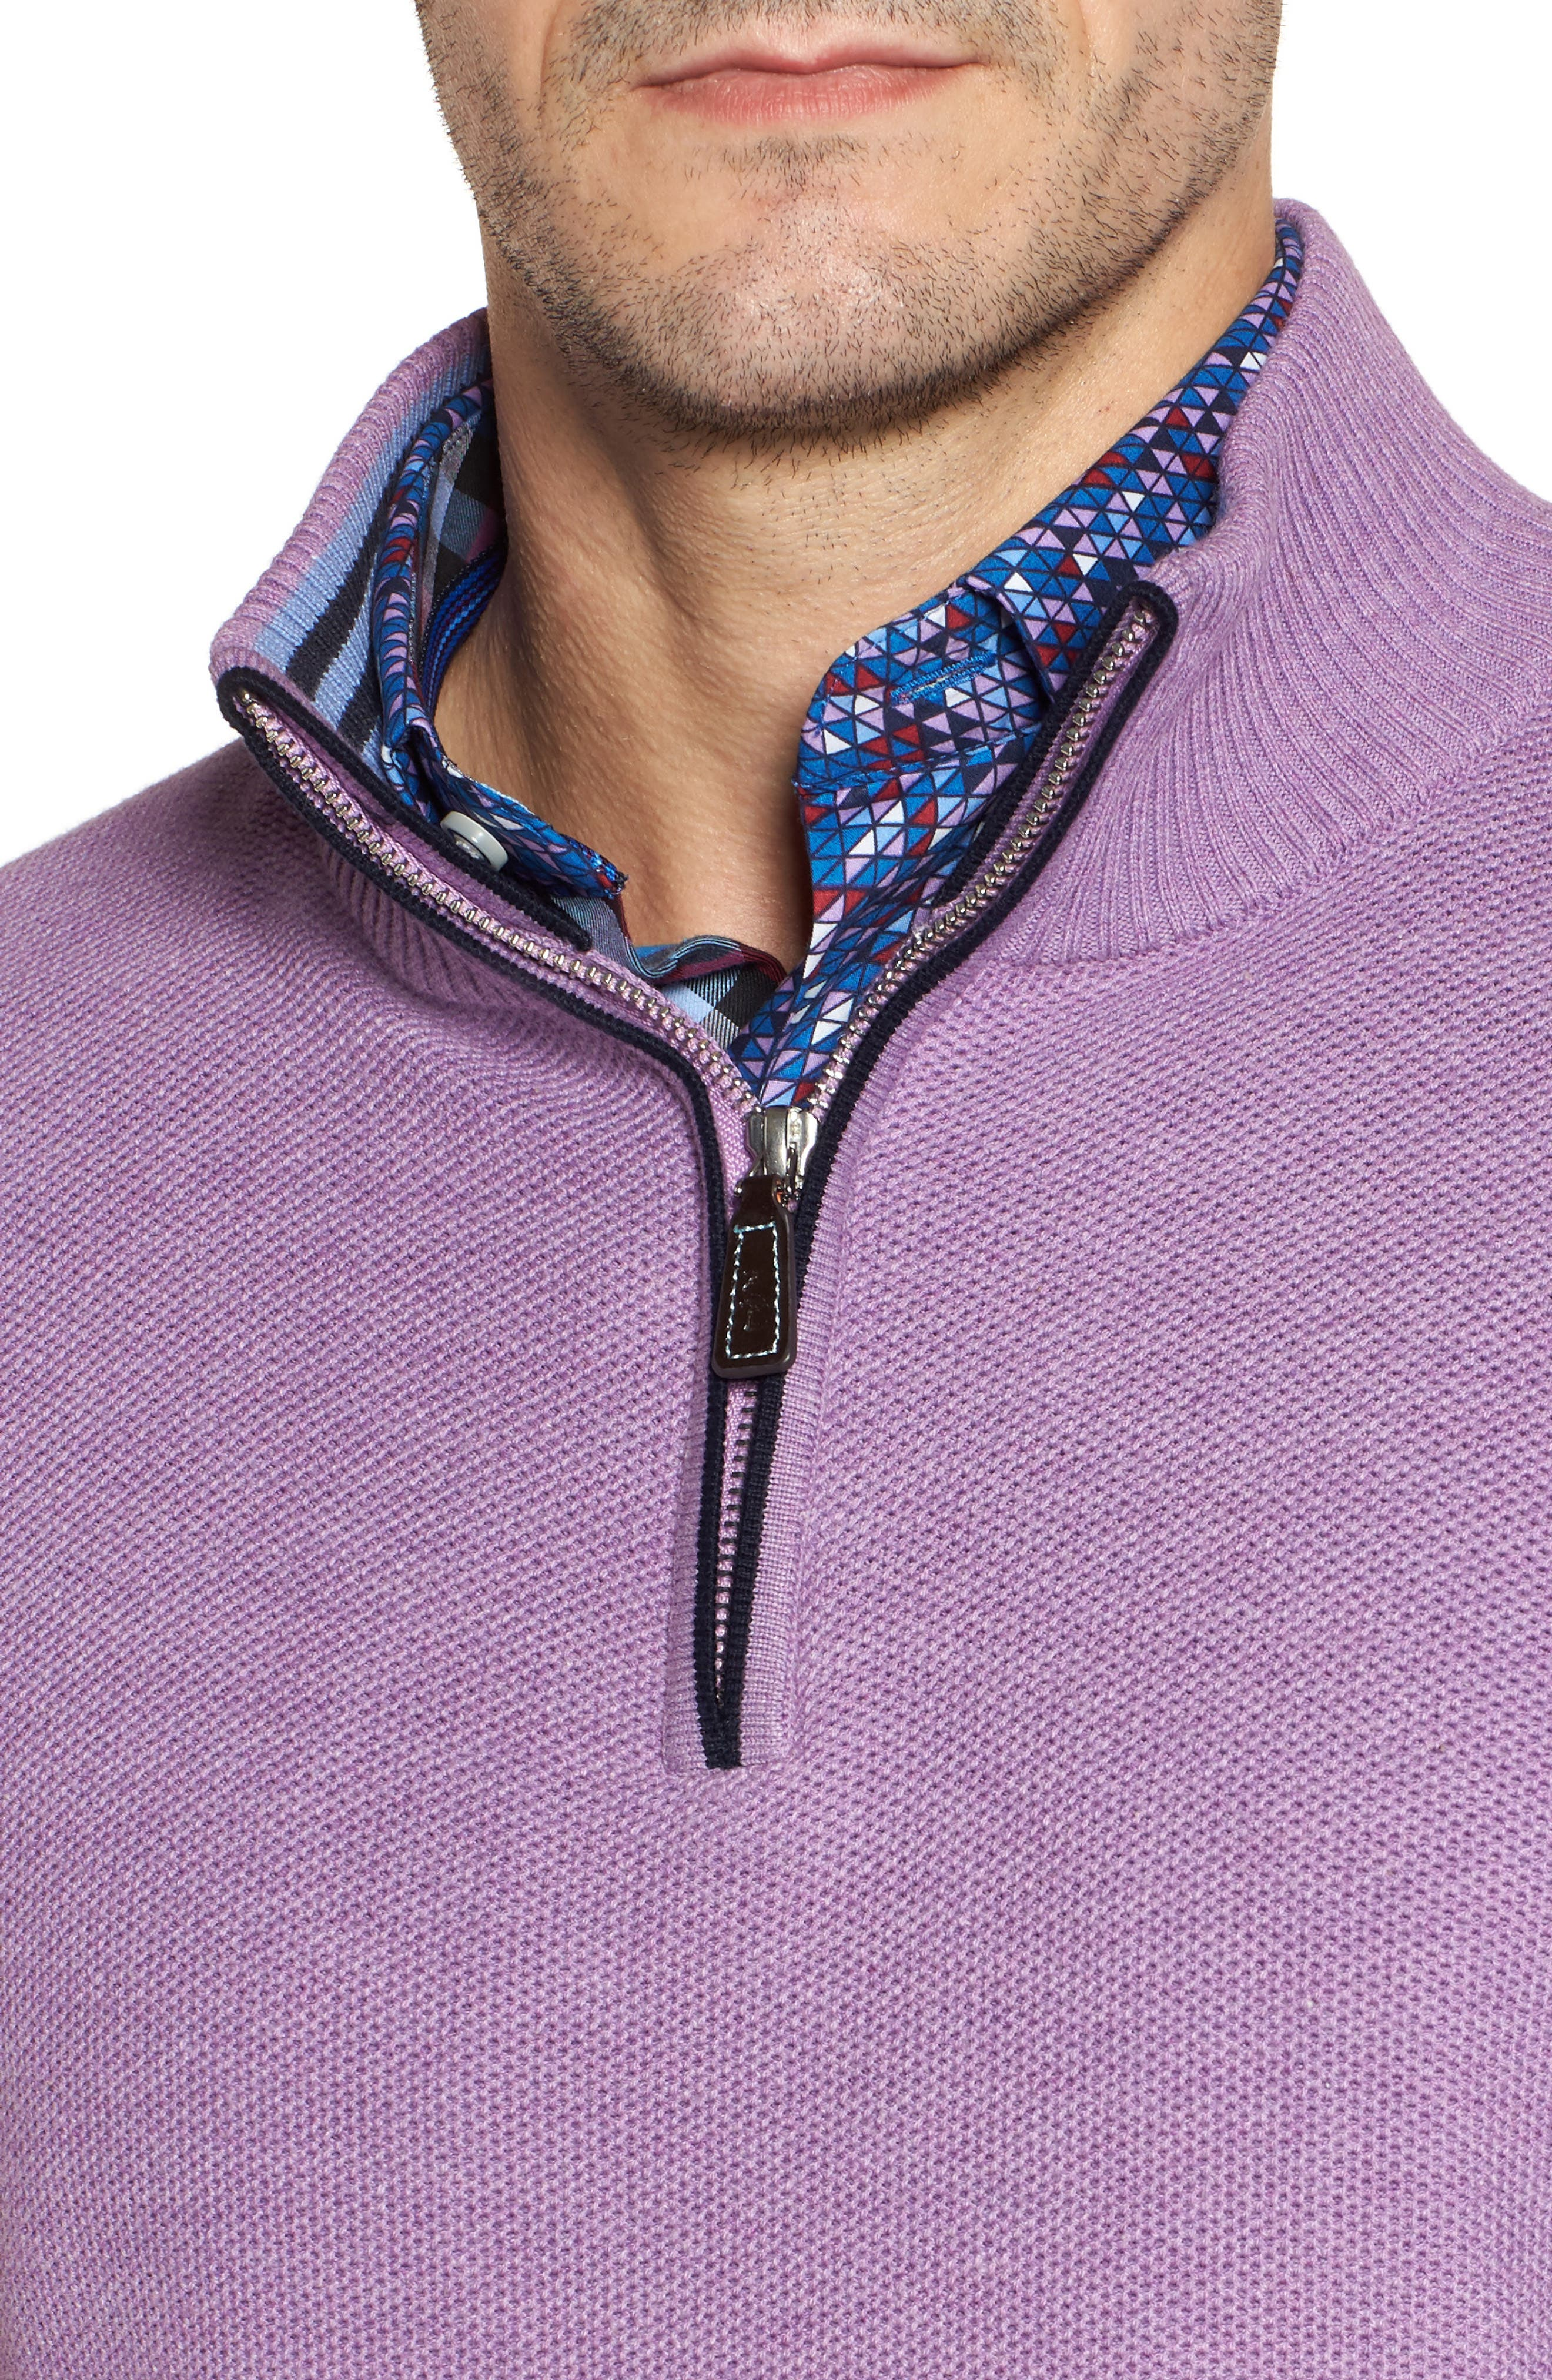 Alternate Image 4  - TailorByrd Ossun Tipped Quarter Zip Sweater